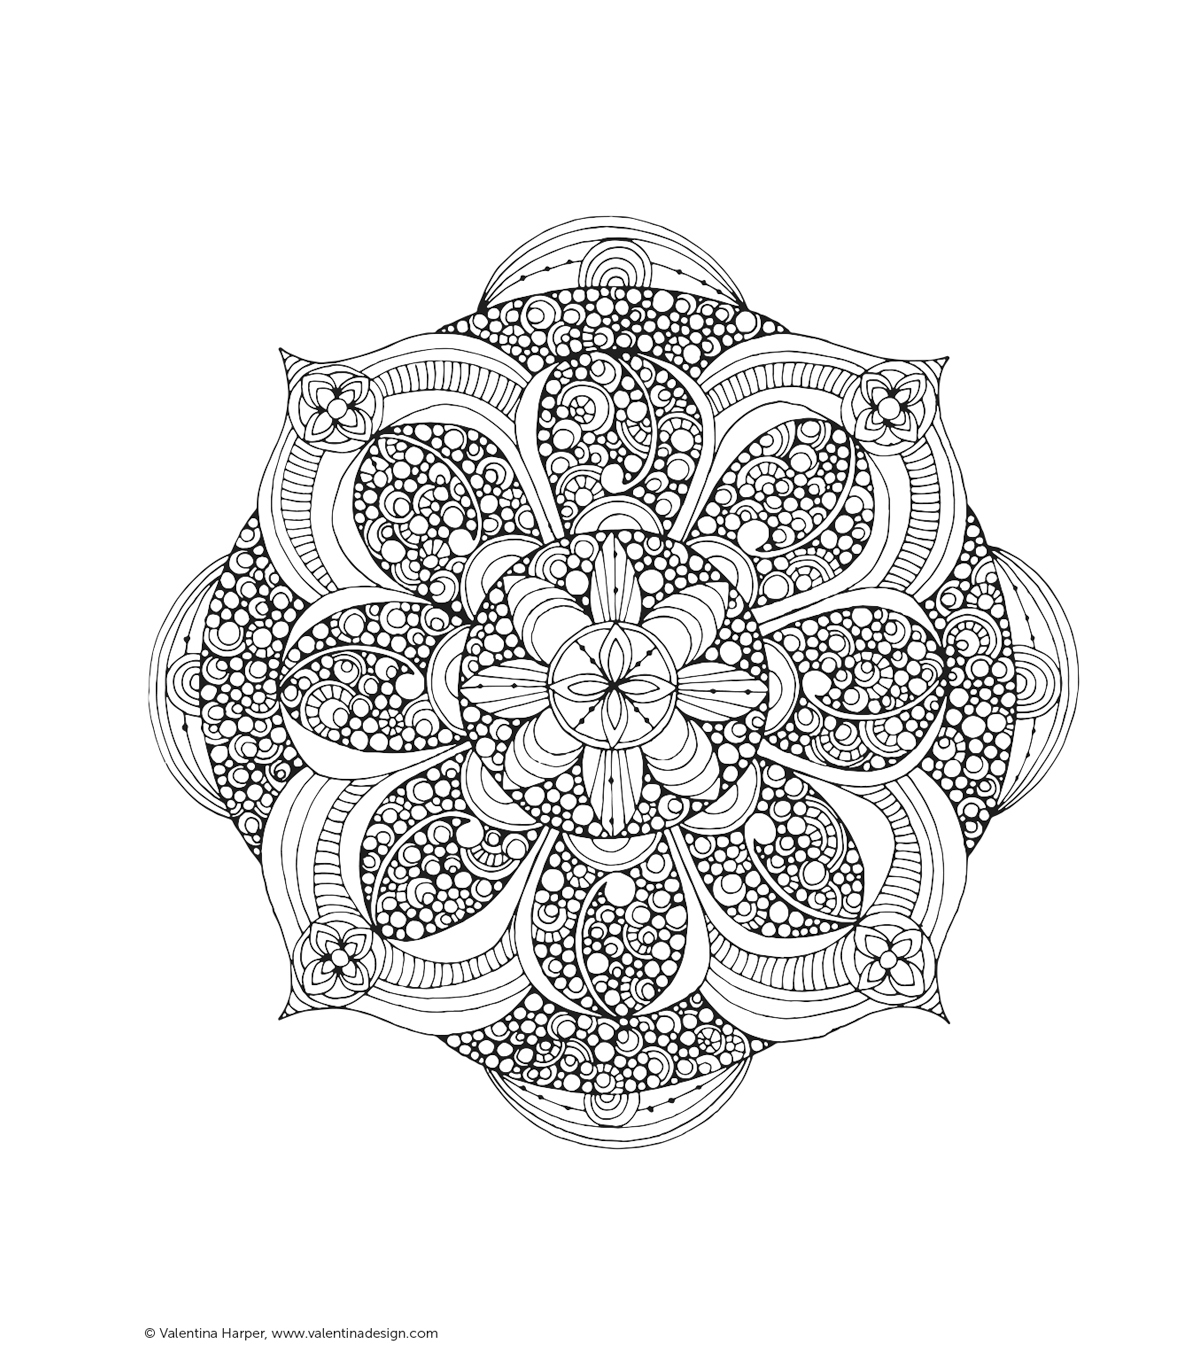 mandalas to color for adults creative coloring mandalas coloring book for adults jo ann mandalas to color for adults